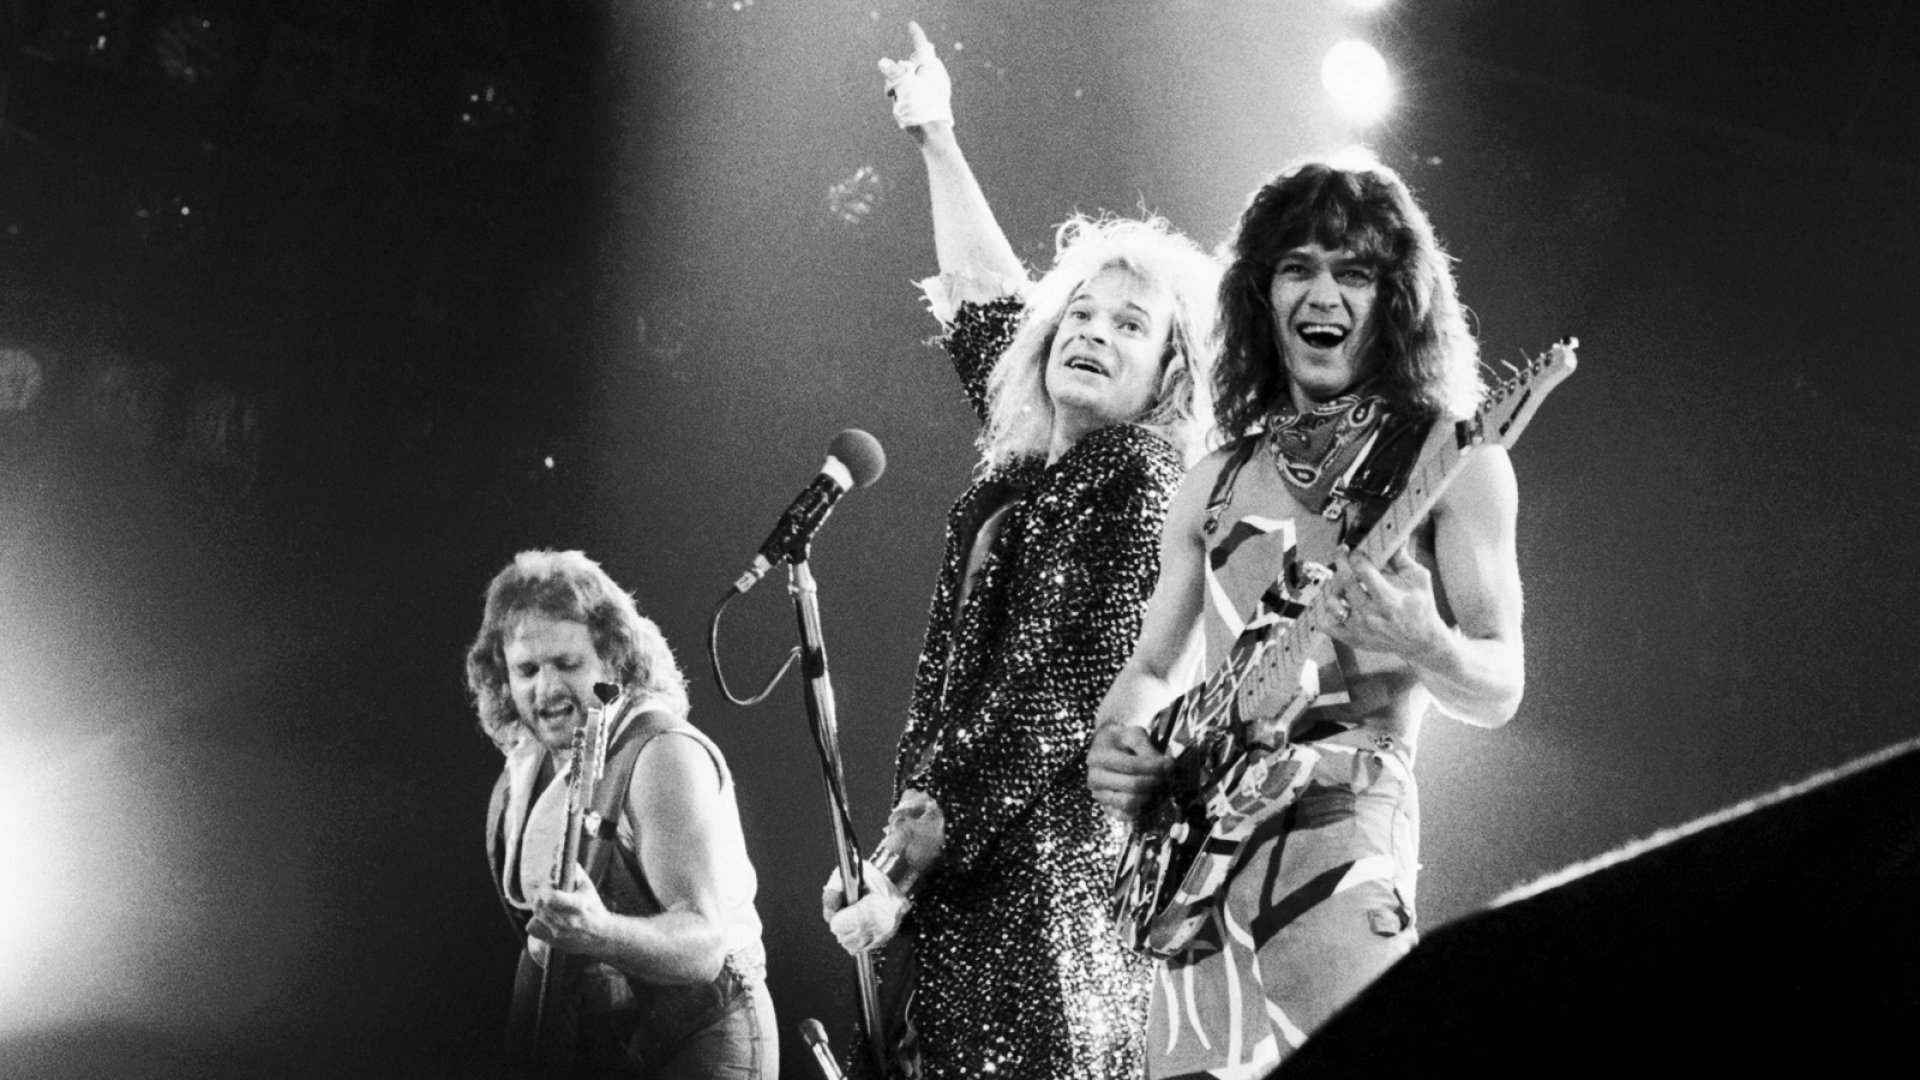 Ain't Talkin' Bout Love: 3 Lessons in Building a Brand from Van Halen